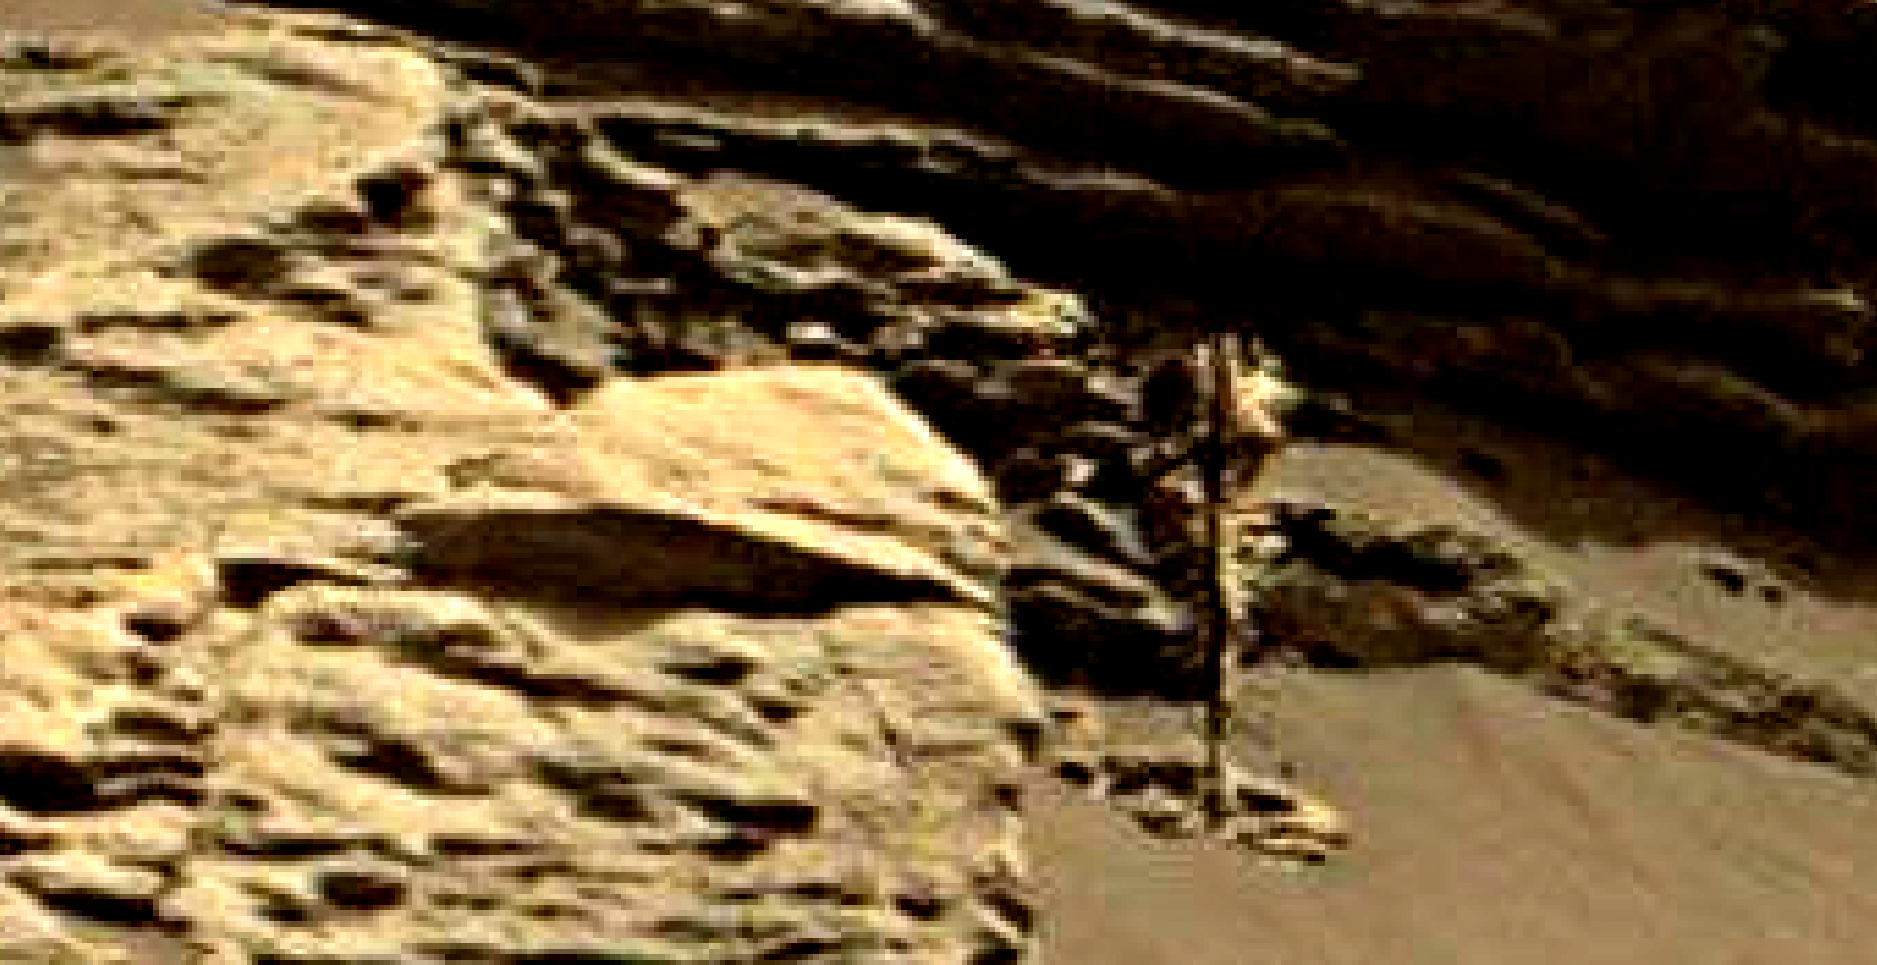 mars-sol-1450-anomaly-artifacts-3a-was-life-on-mars